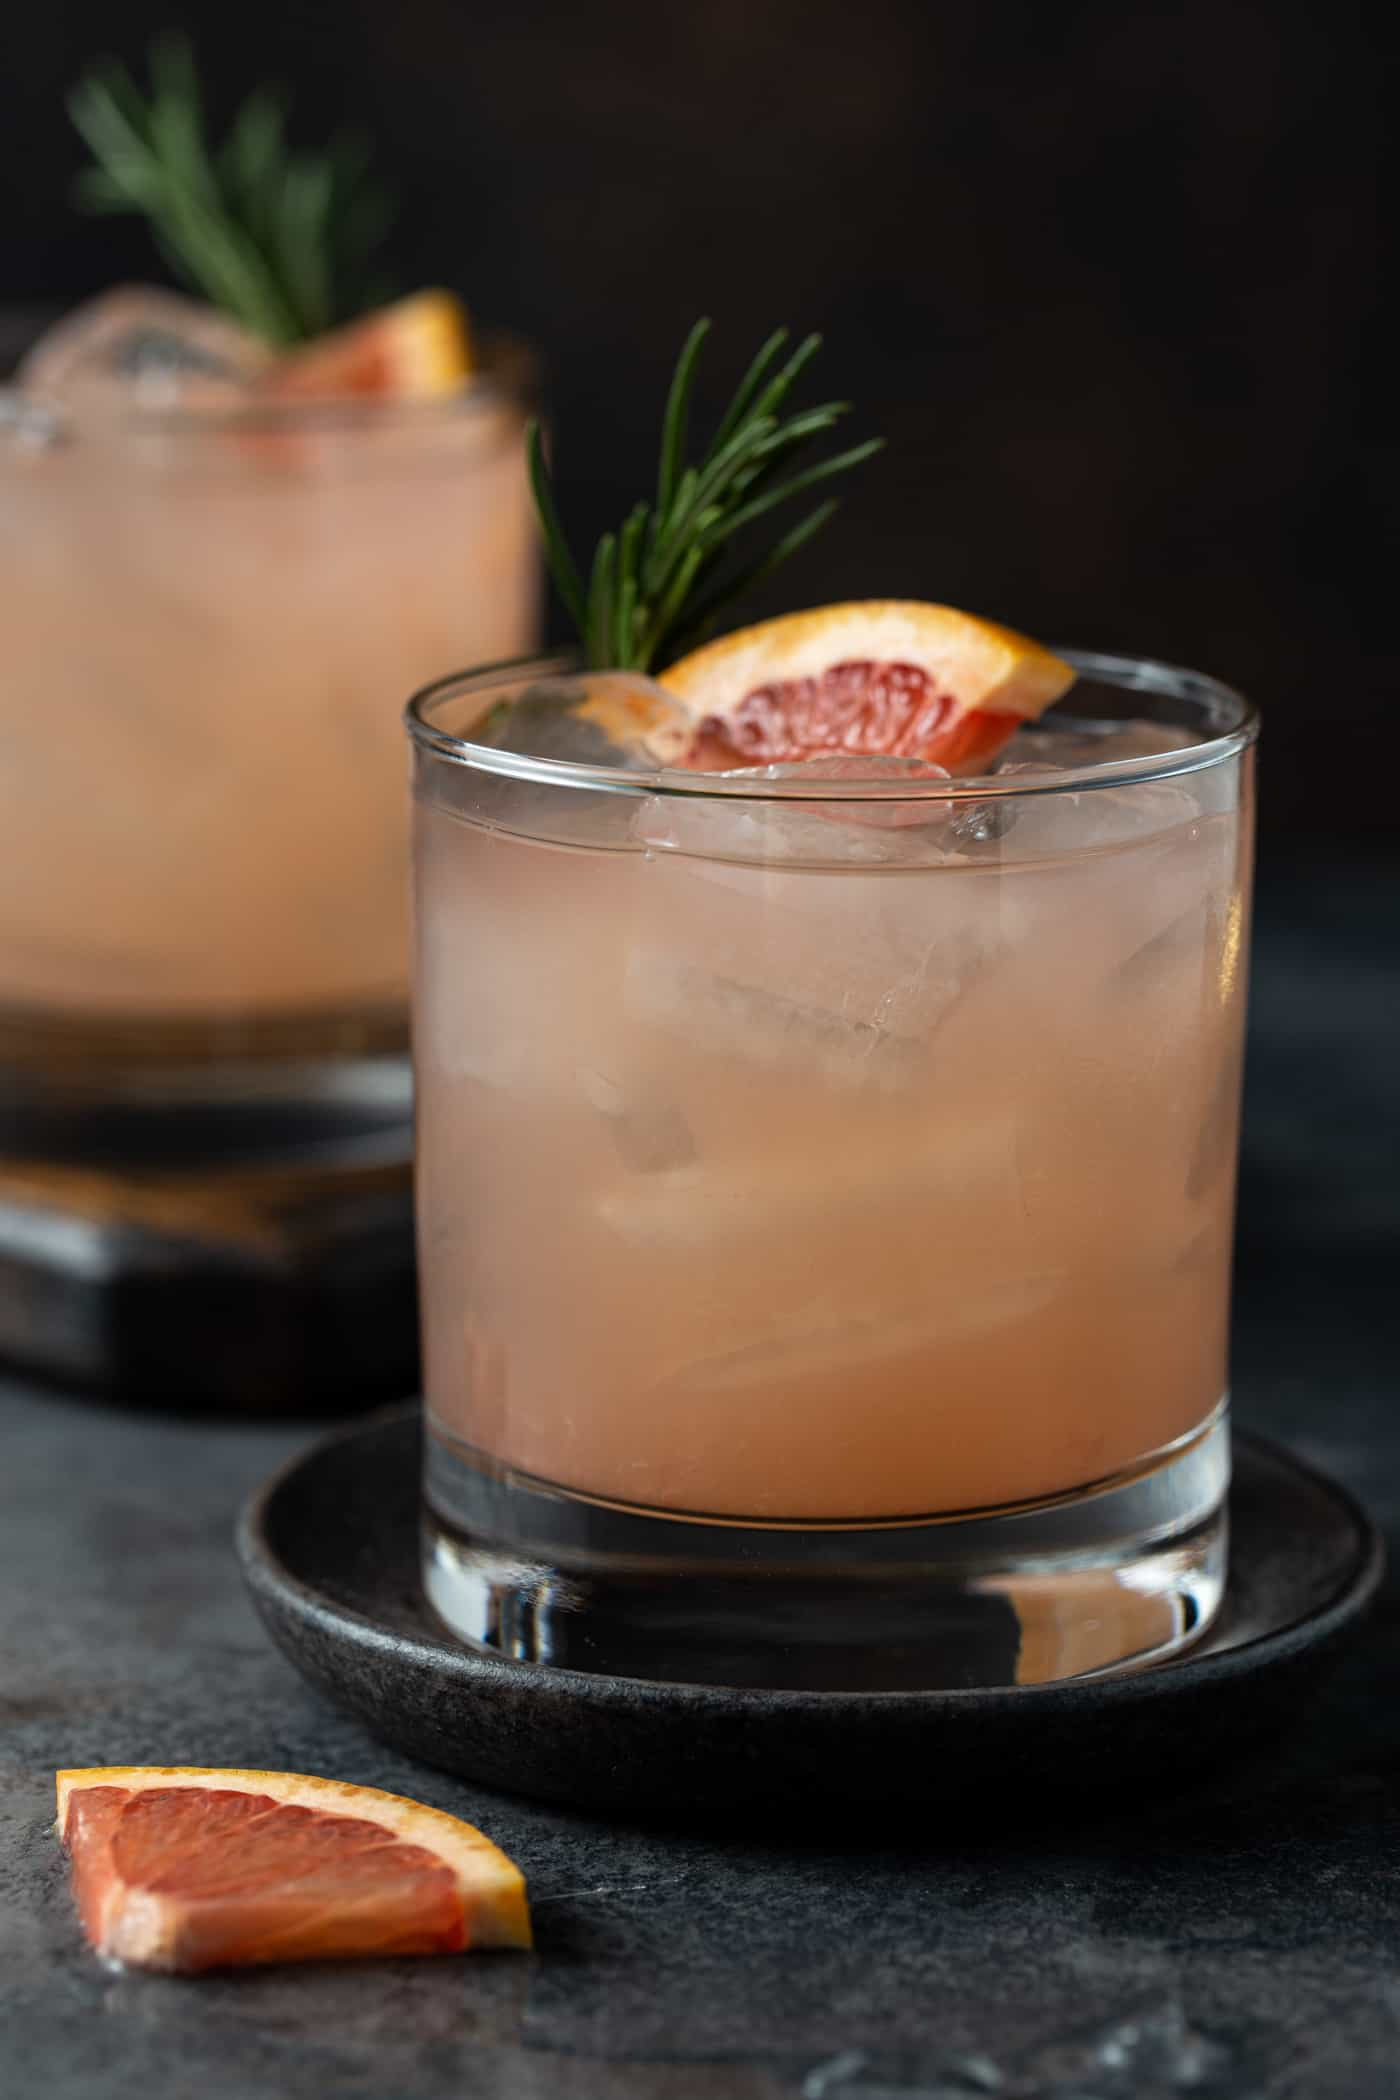 cocktails in low ball glasses with lots of ice, fresh rosemary for a garnish along with a fresh grapefruit wedge.